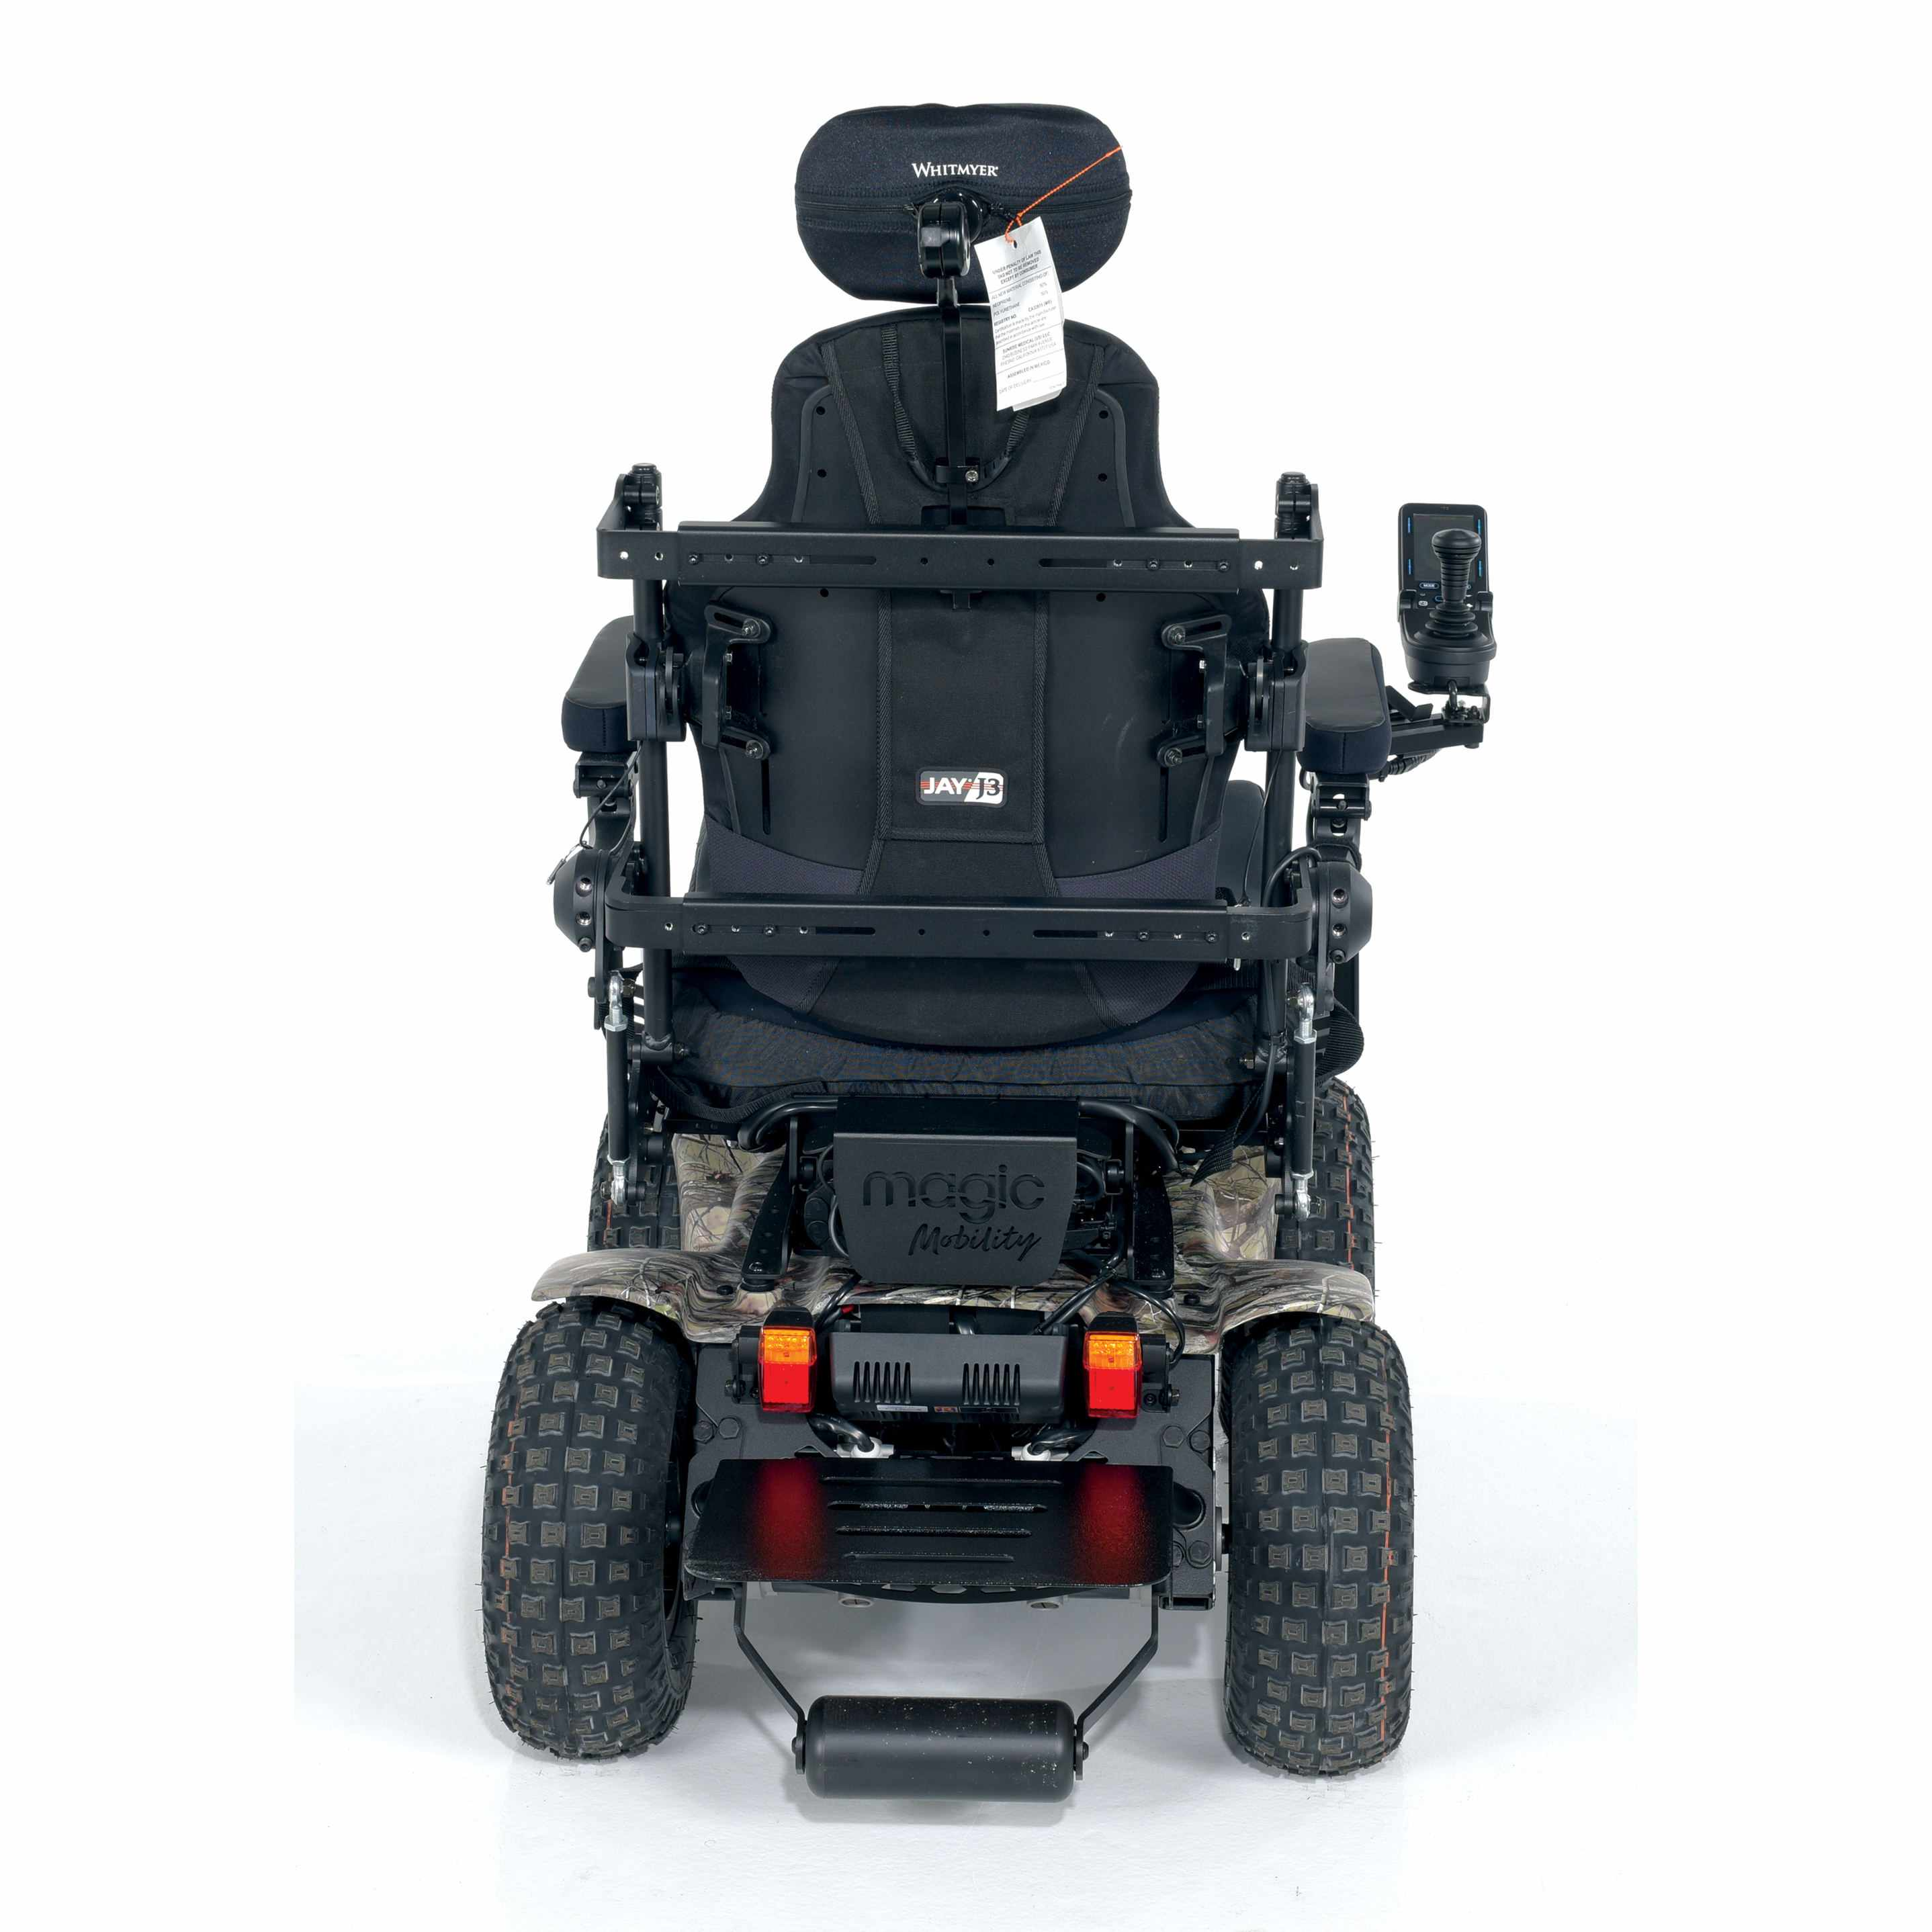 Magic Mobility Extreme X8 4X4 - Electric Wheelchair   Medicaleshop